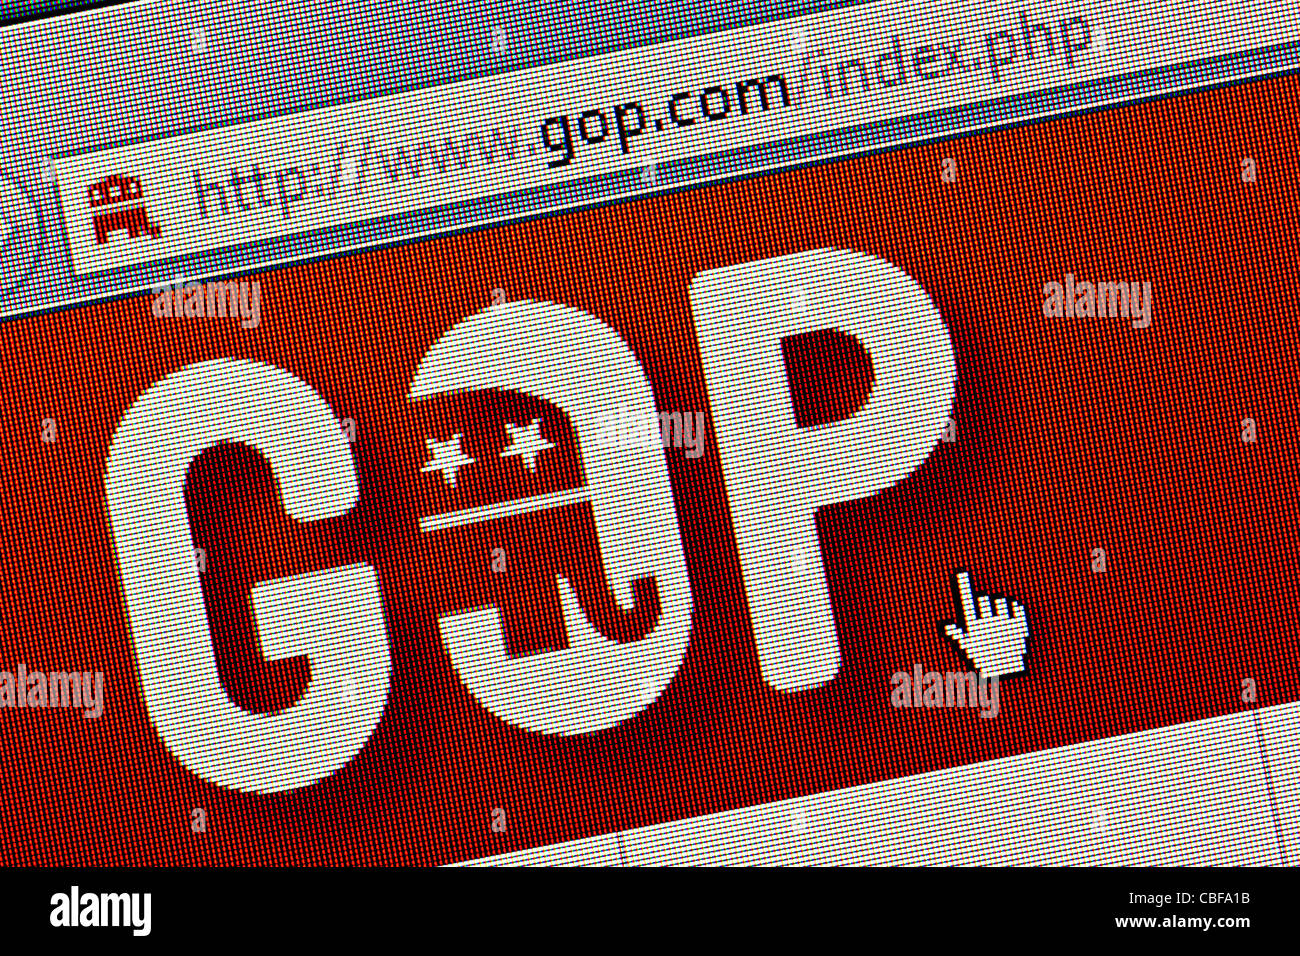 GOP Republican Party US logo and website close up - Stock Image